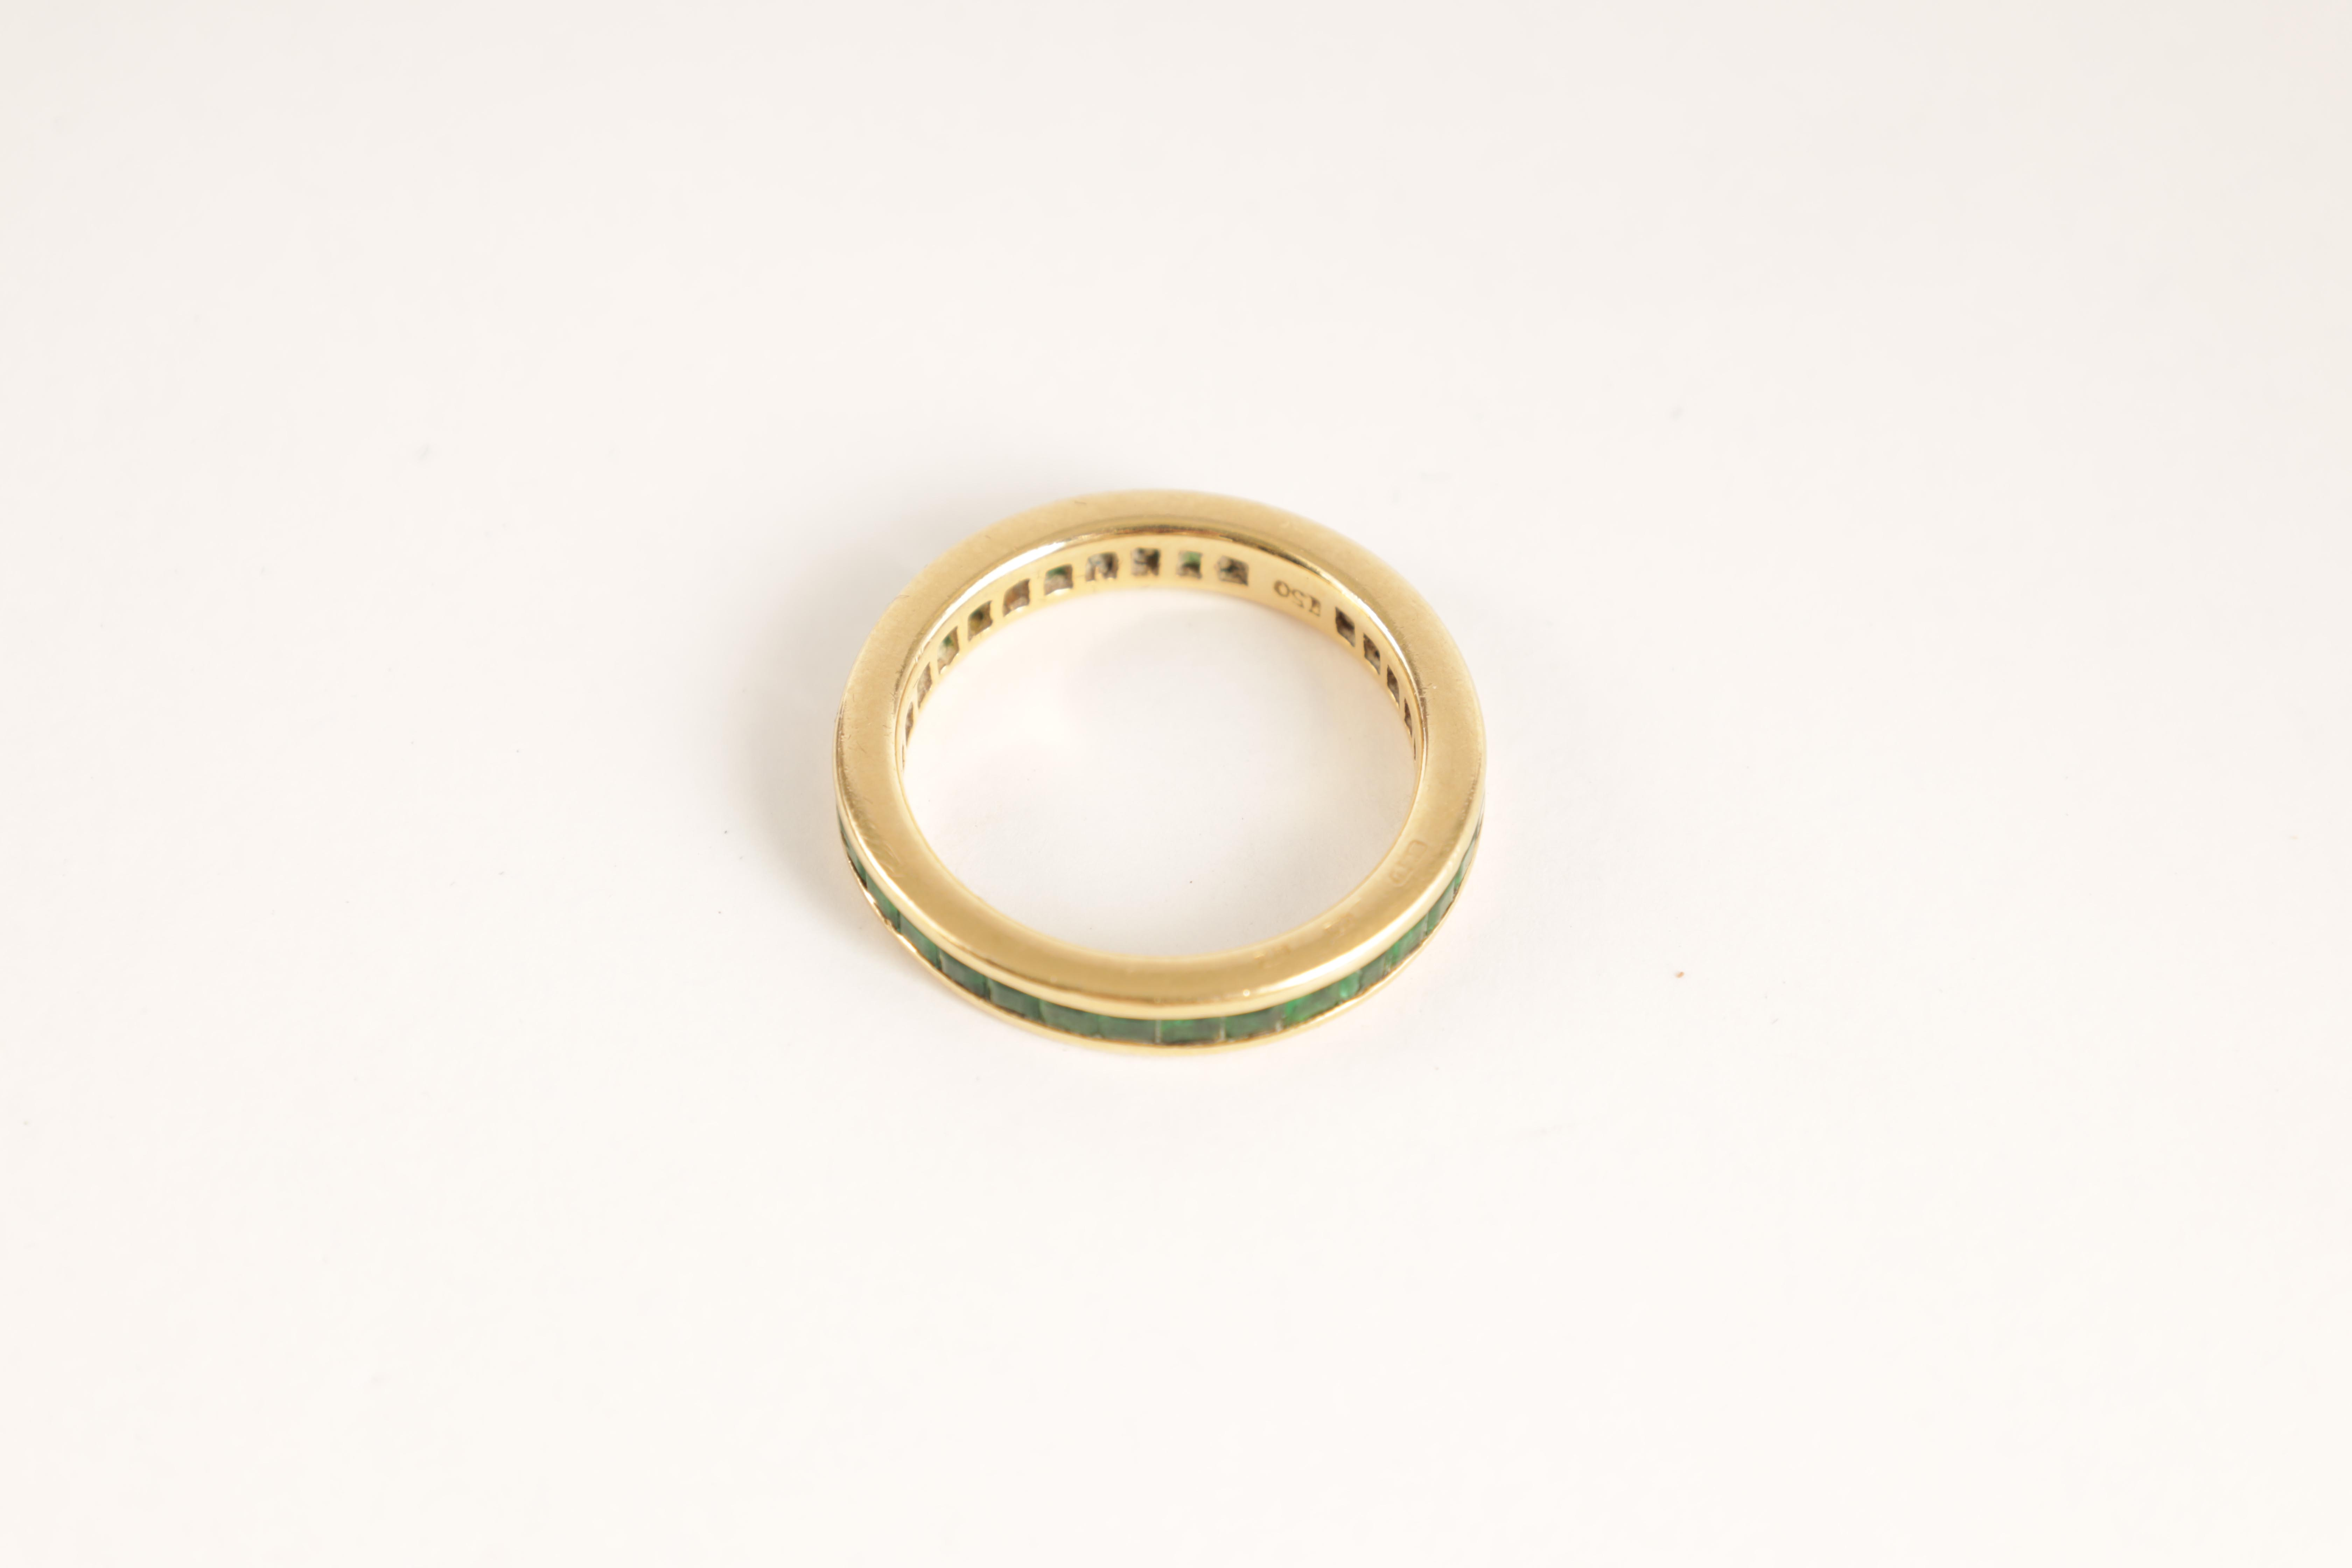 AN 18CT GOLD AND EMERALD ETERNITY RING set all round with square-cut stones, app. weight 4.5g - Image 4 of 5